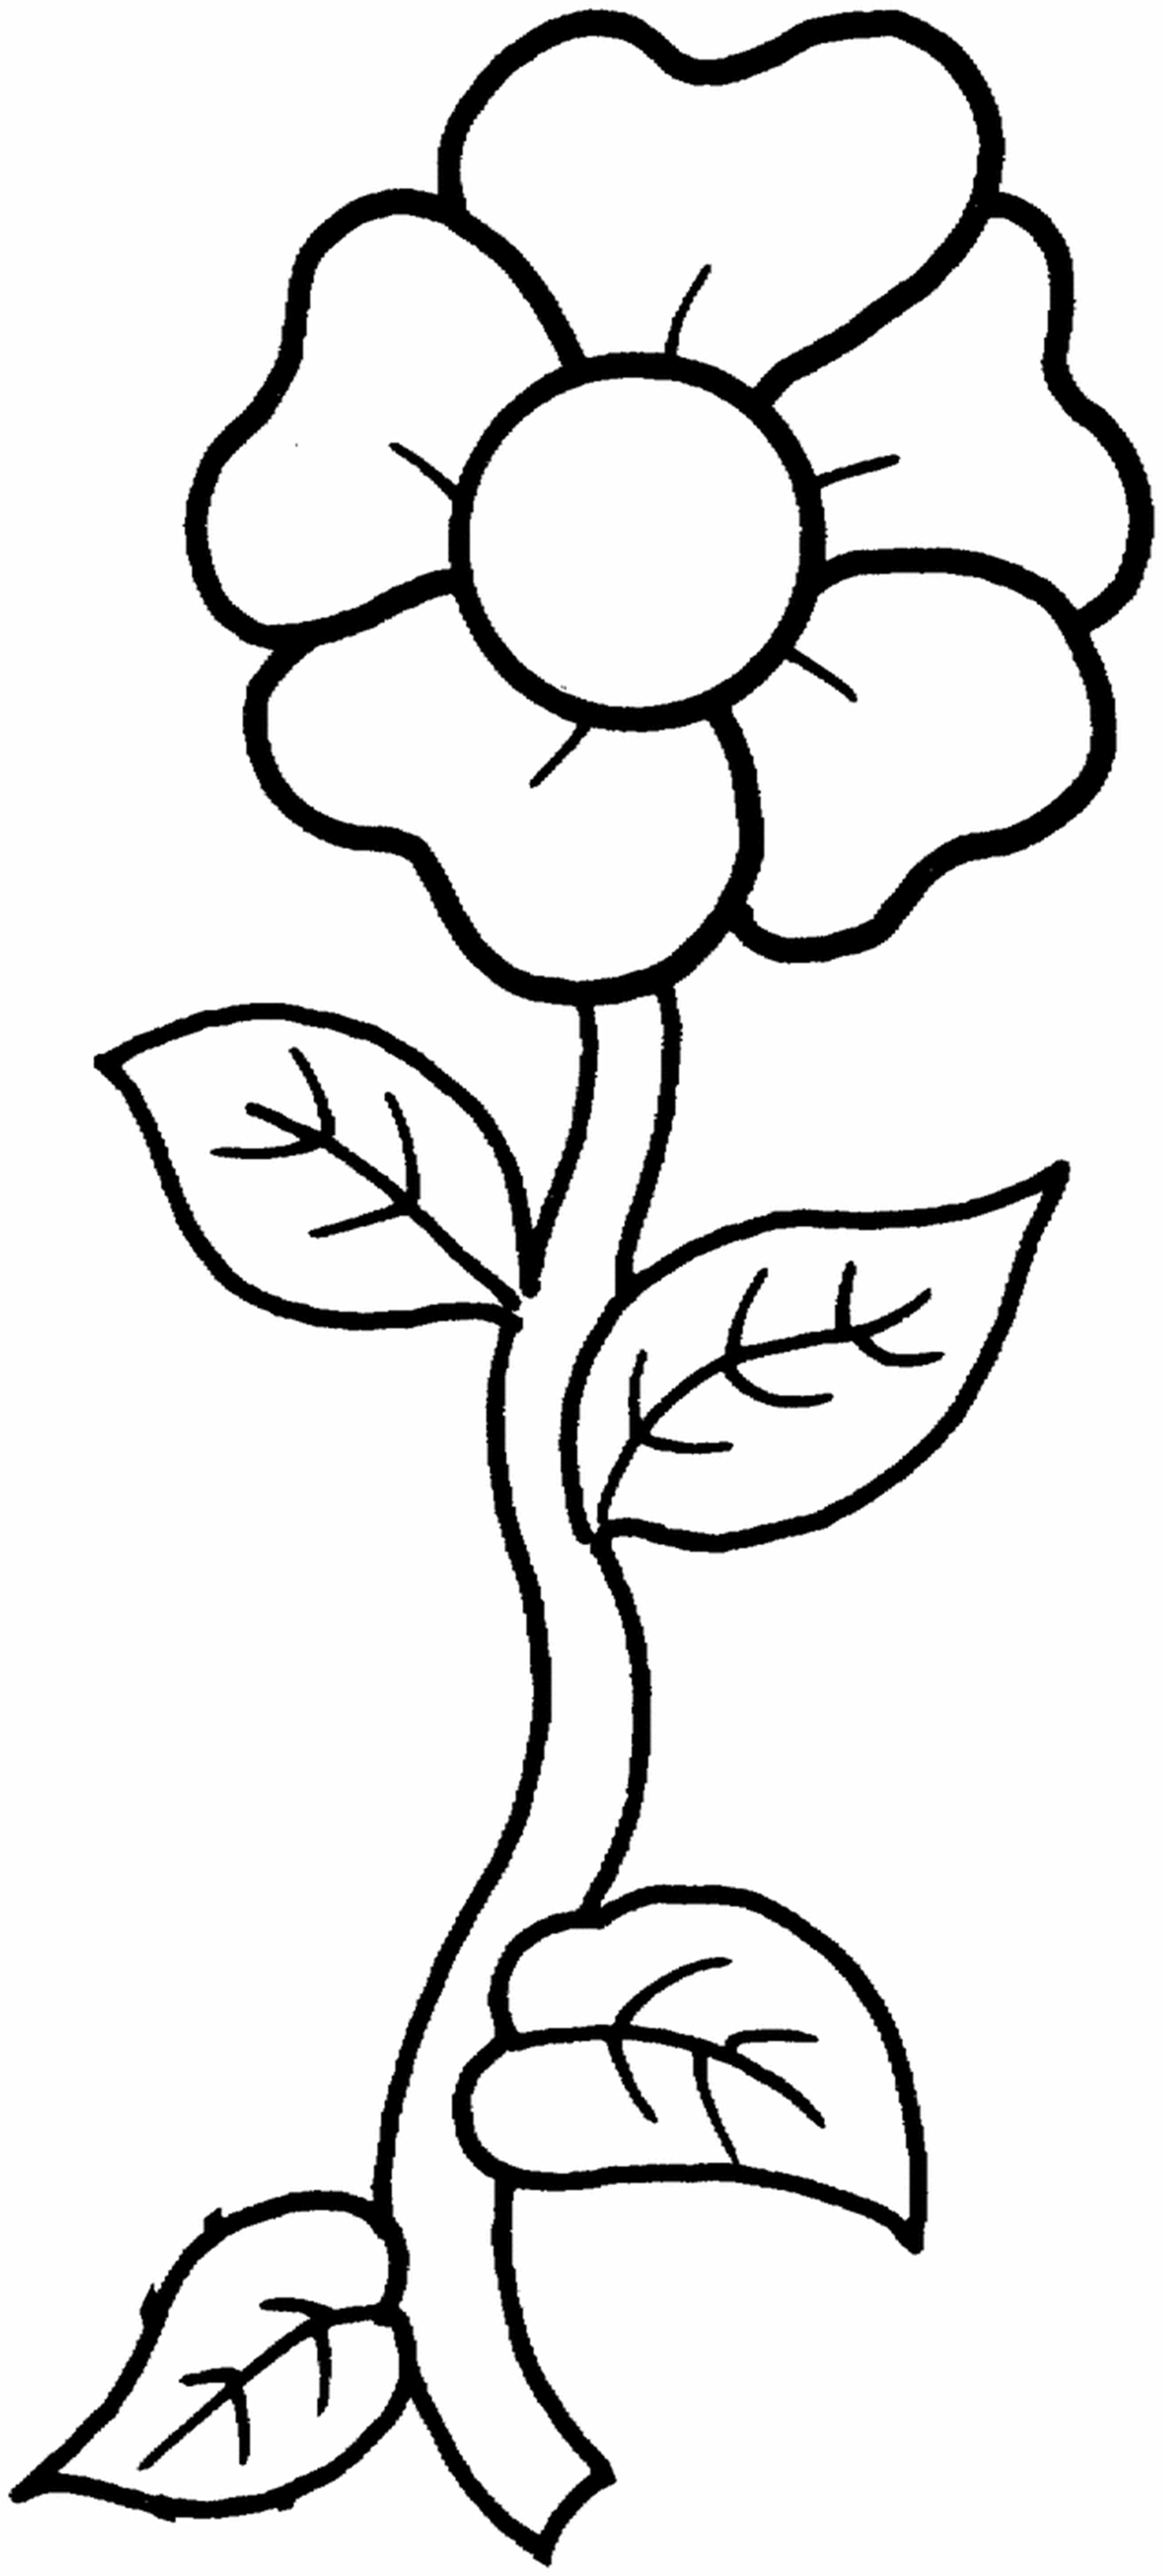 free printable coloring pages of flowers free printable sunflower coloring pages for kids free coloring flowers printable pages of